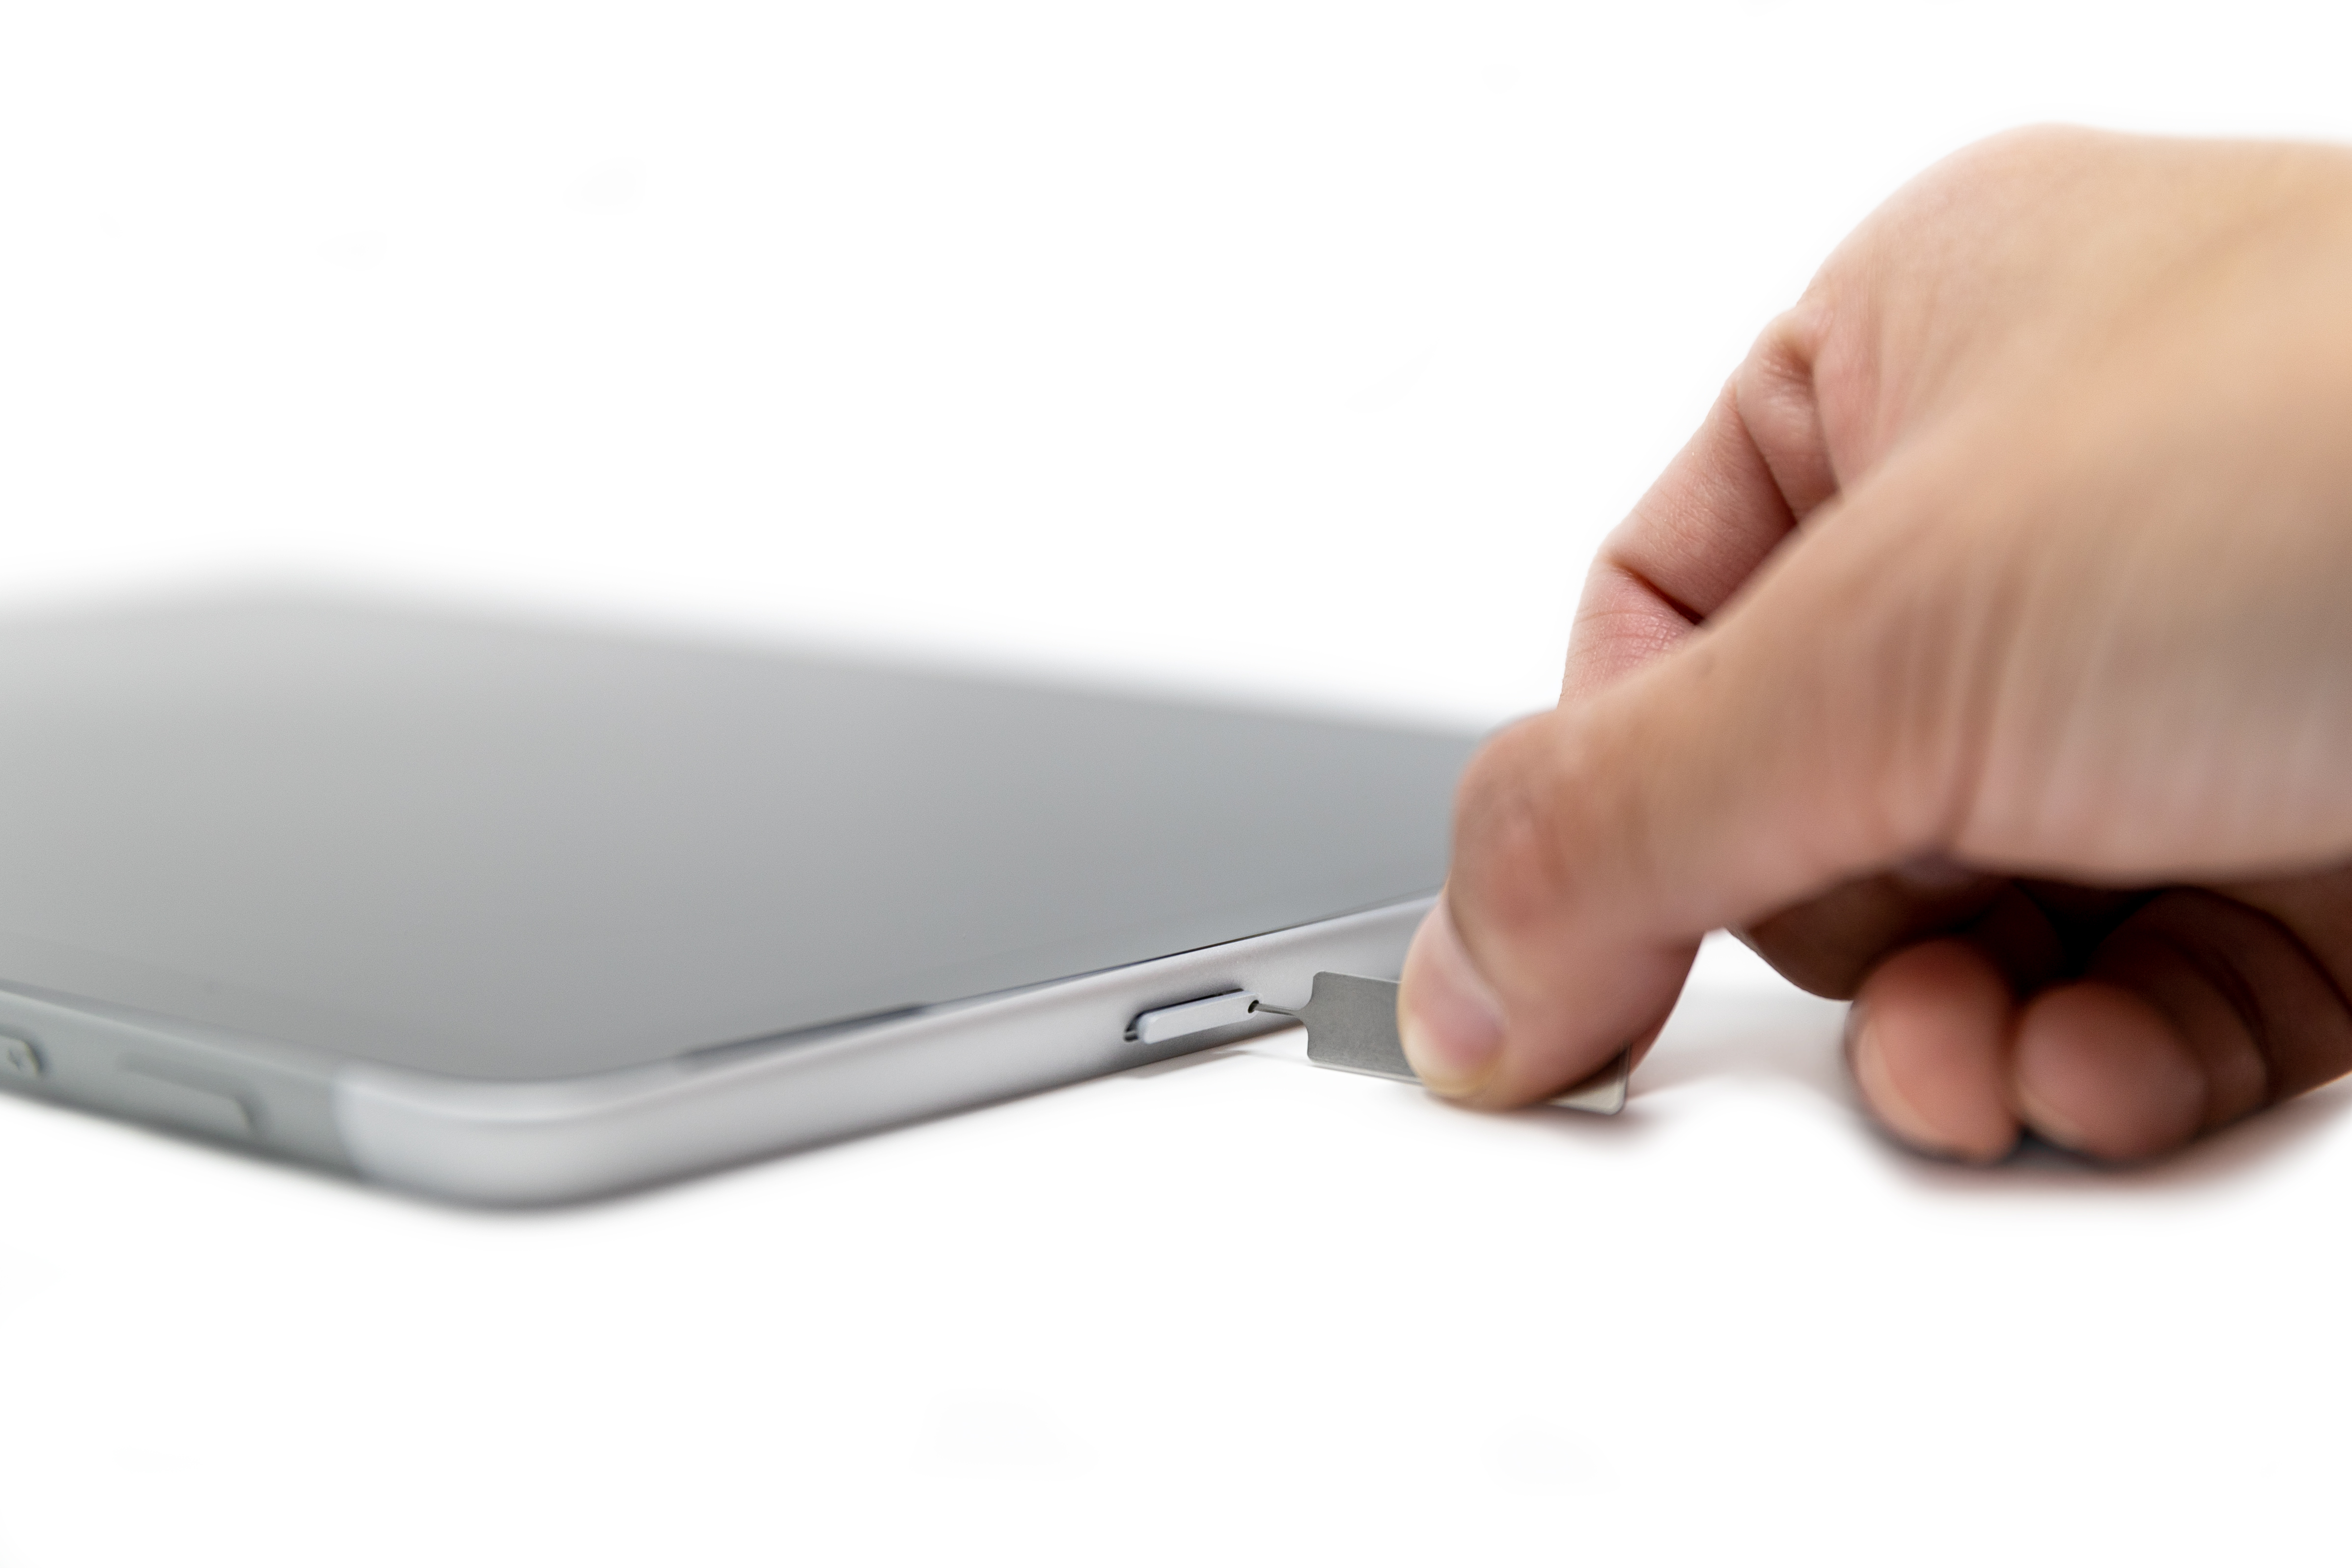 A person inserting a SIM pin into the SIM card slot of a Surface Go 2.